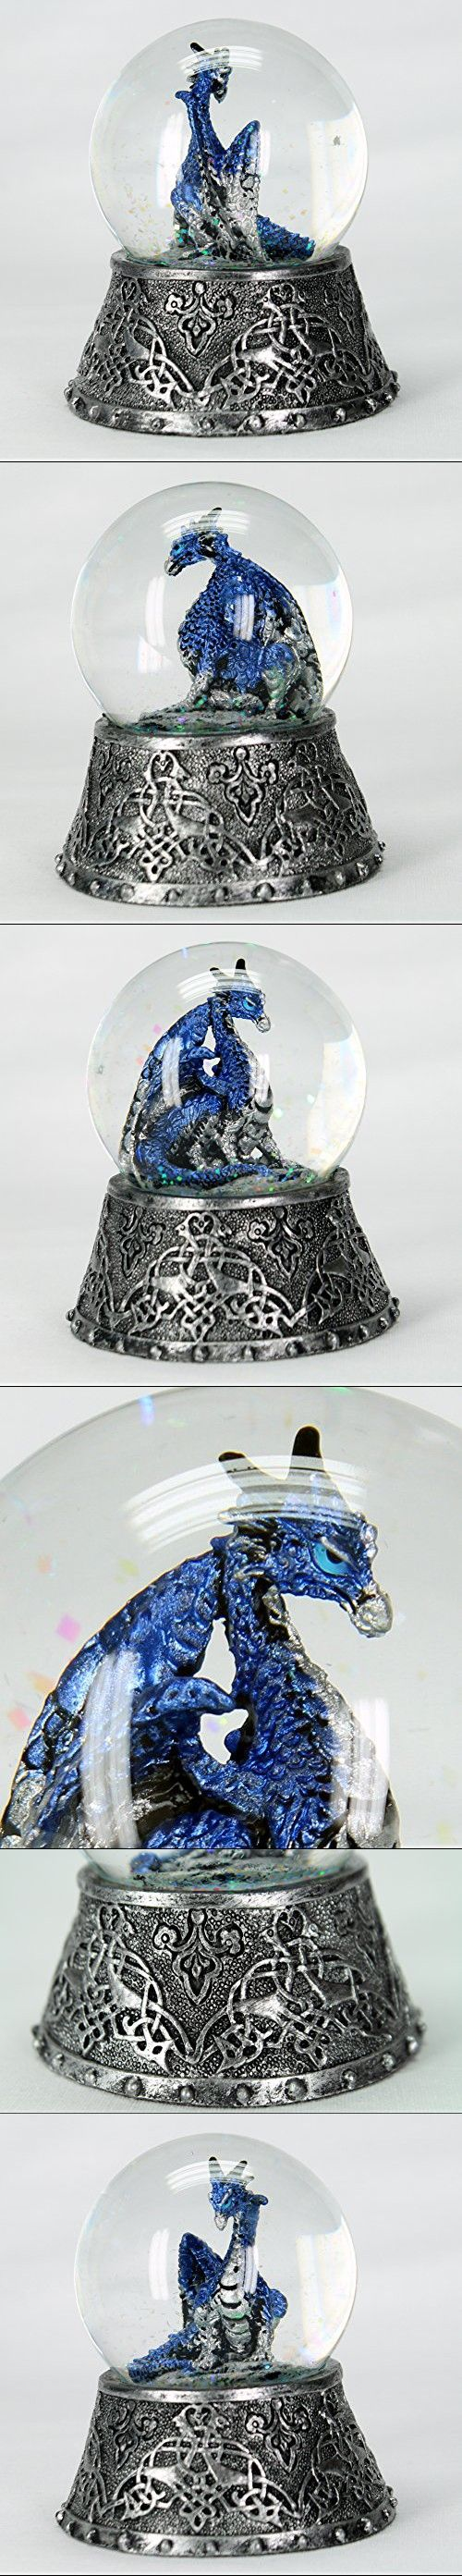 "Dragon Figurine Statue Blue in Snow Globe with Medieval Base 3 1/2"" Tall"